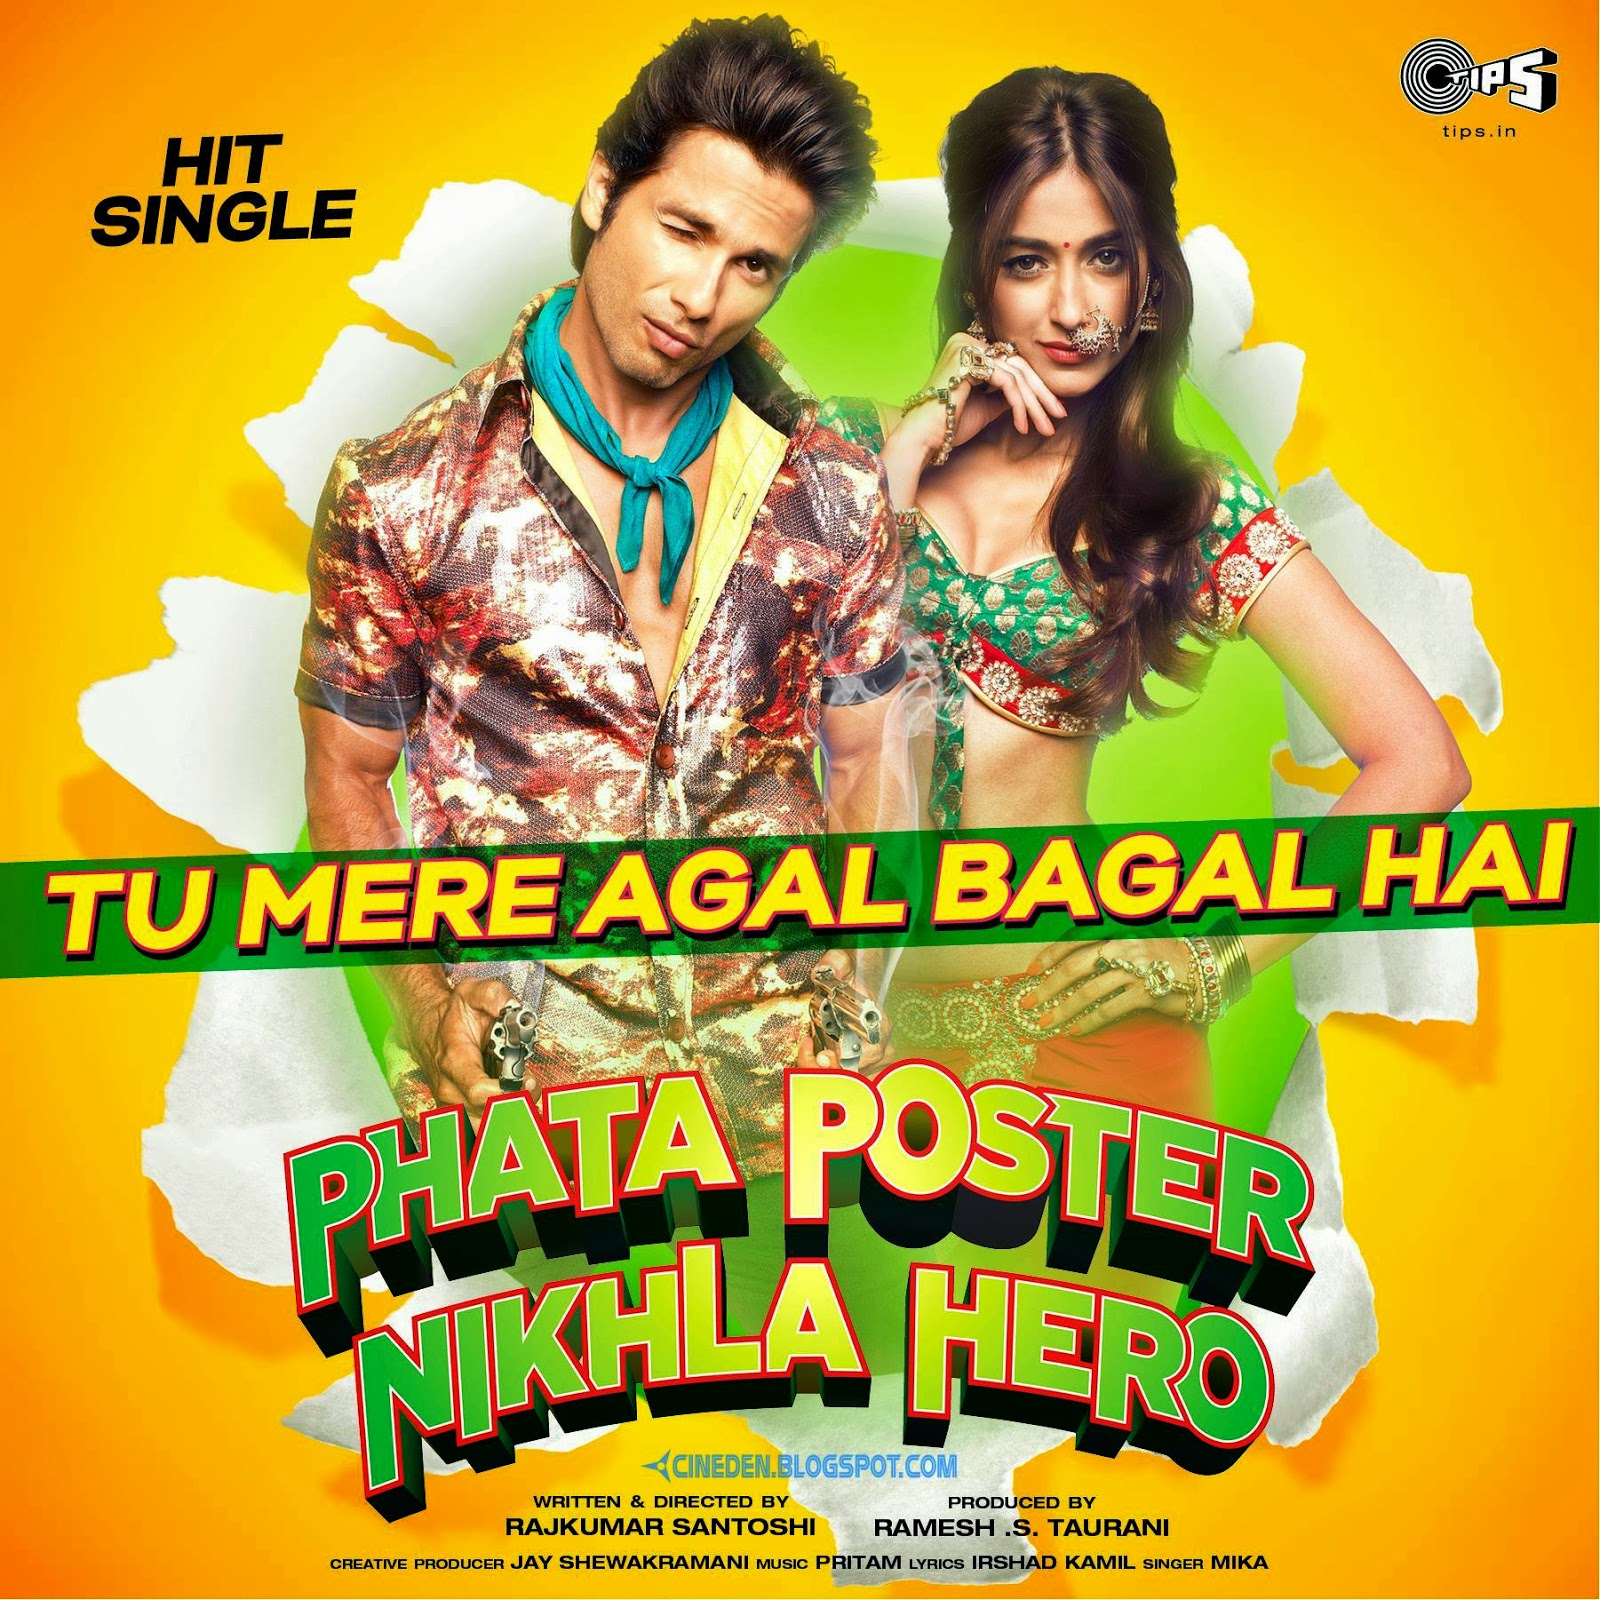 Phata Poster Nikhla Hero (2013) - Hindi Movie Review